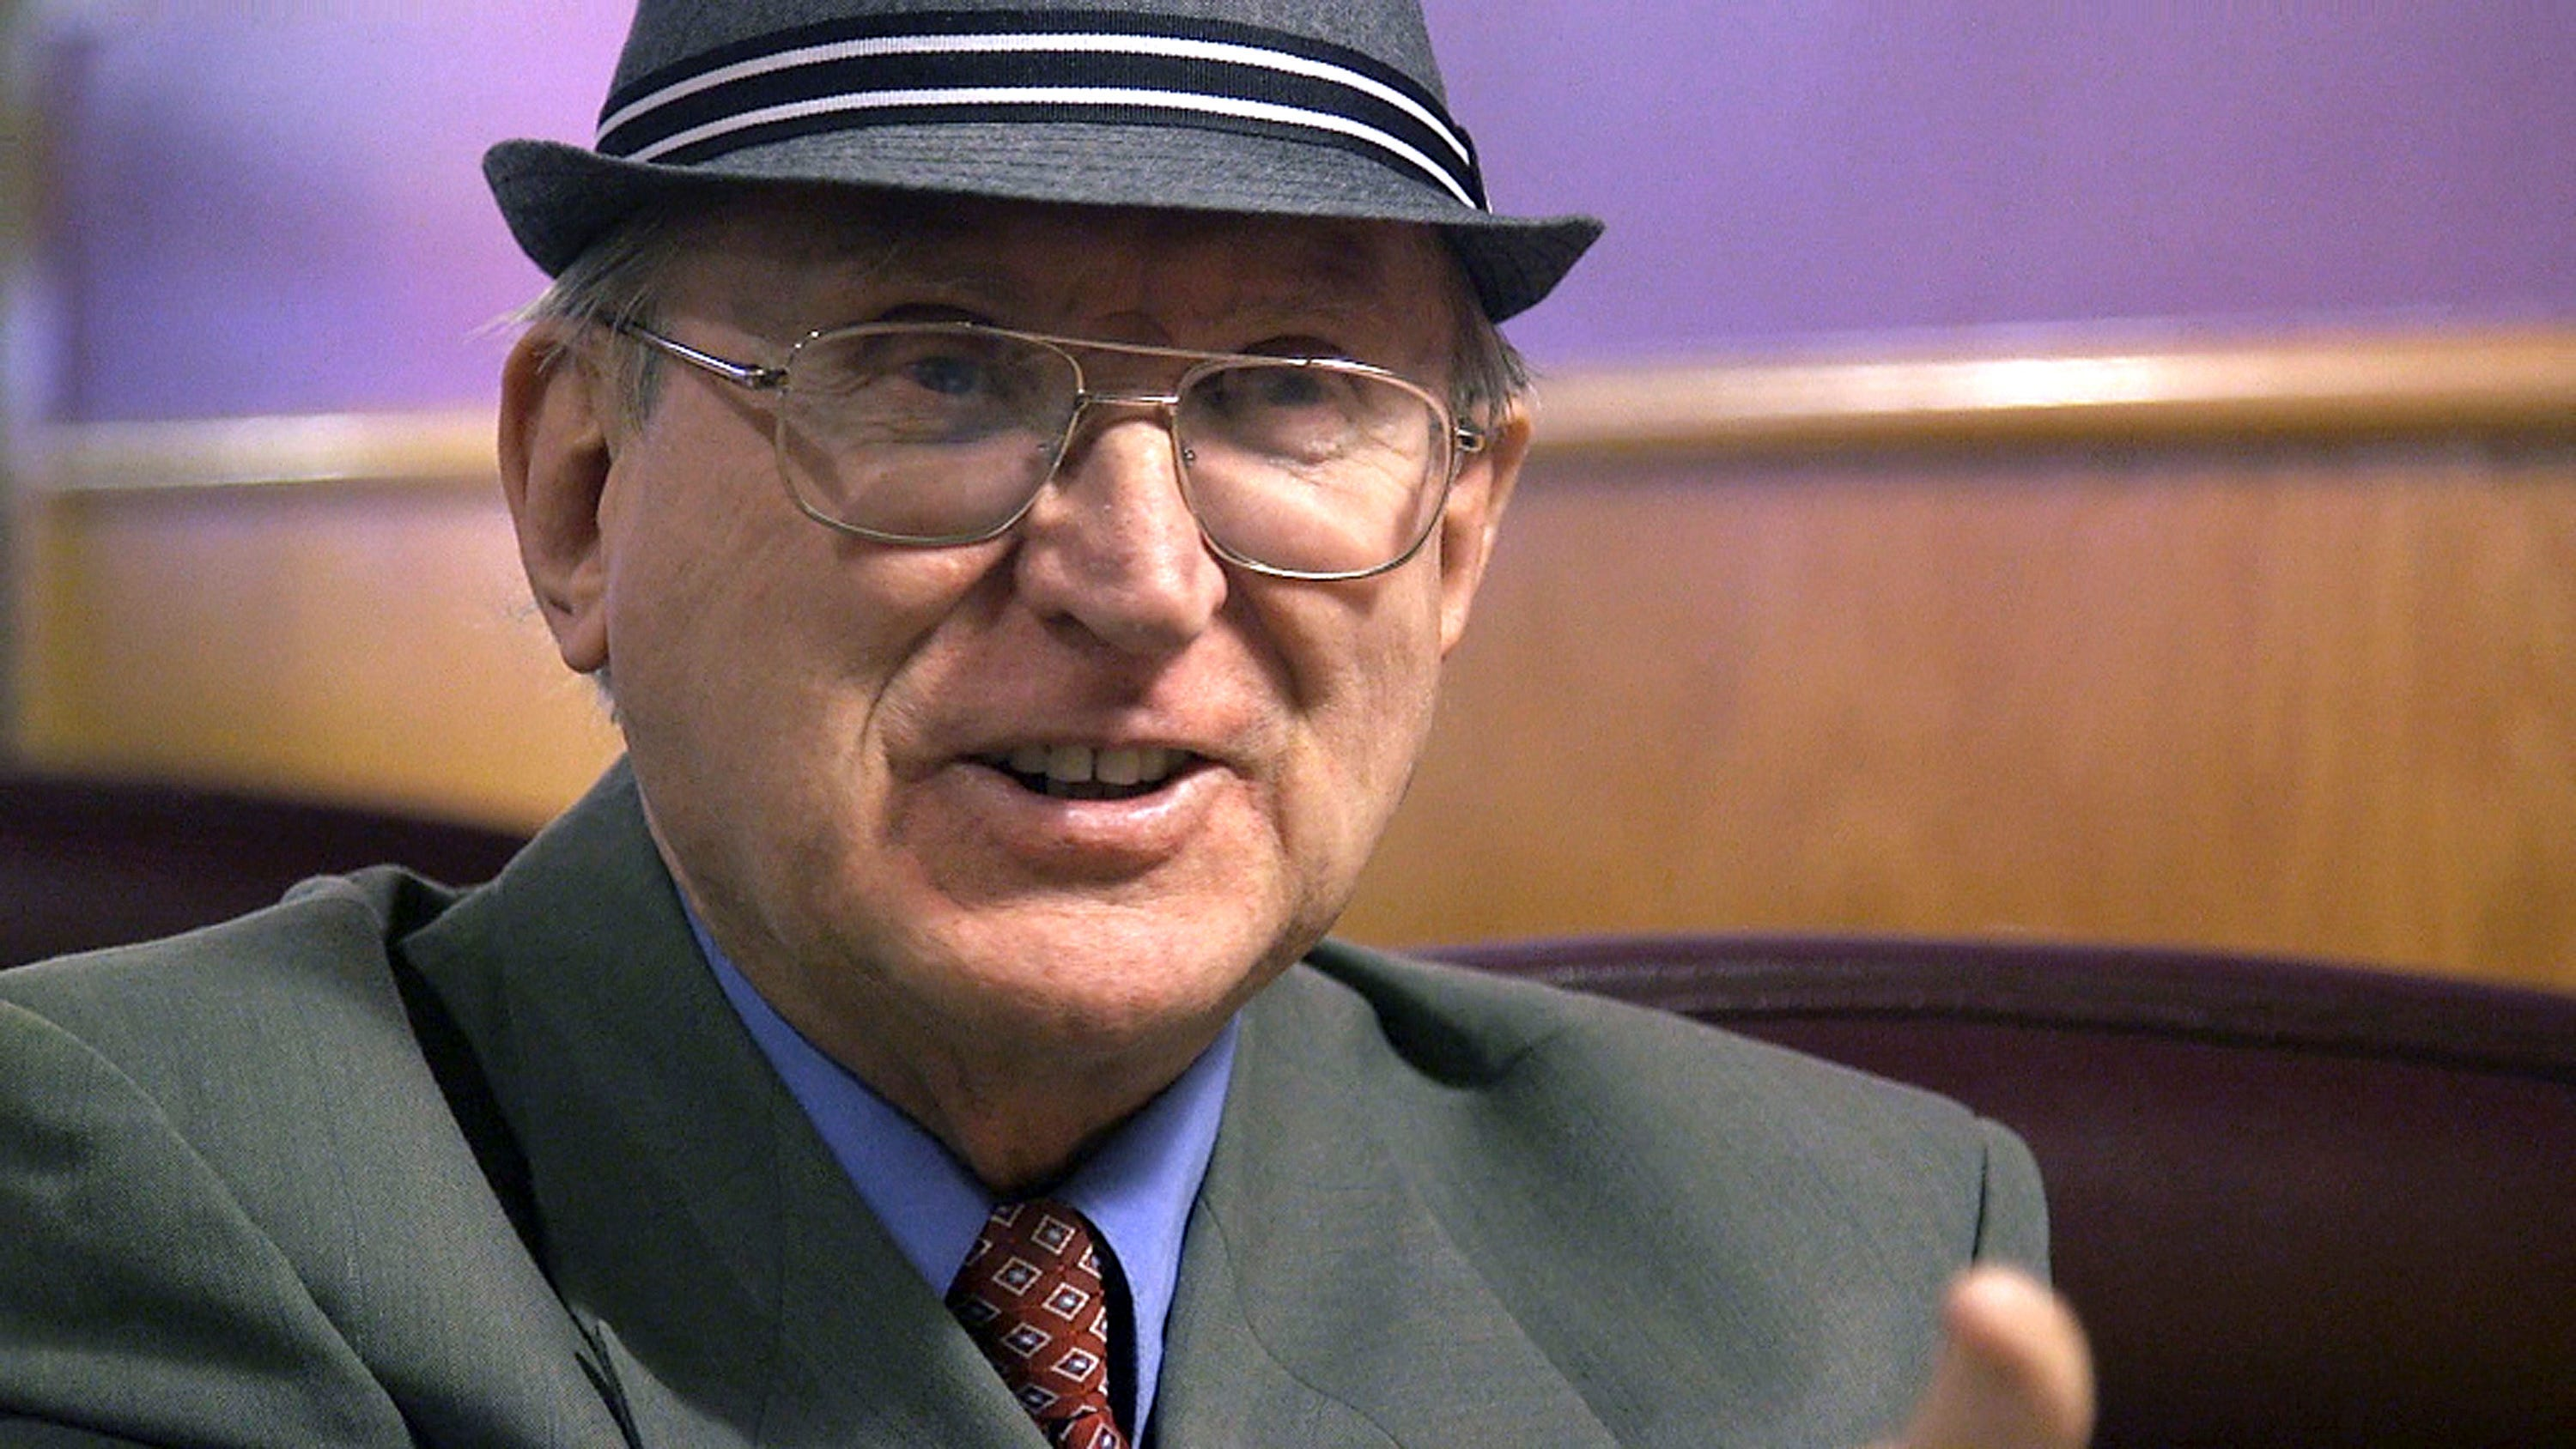 56,000 voters in Illinois House district preferred Holocaust denier to moderate Democrat